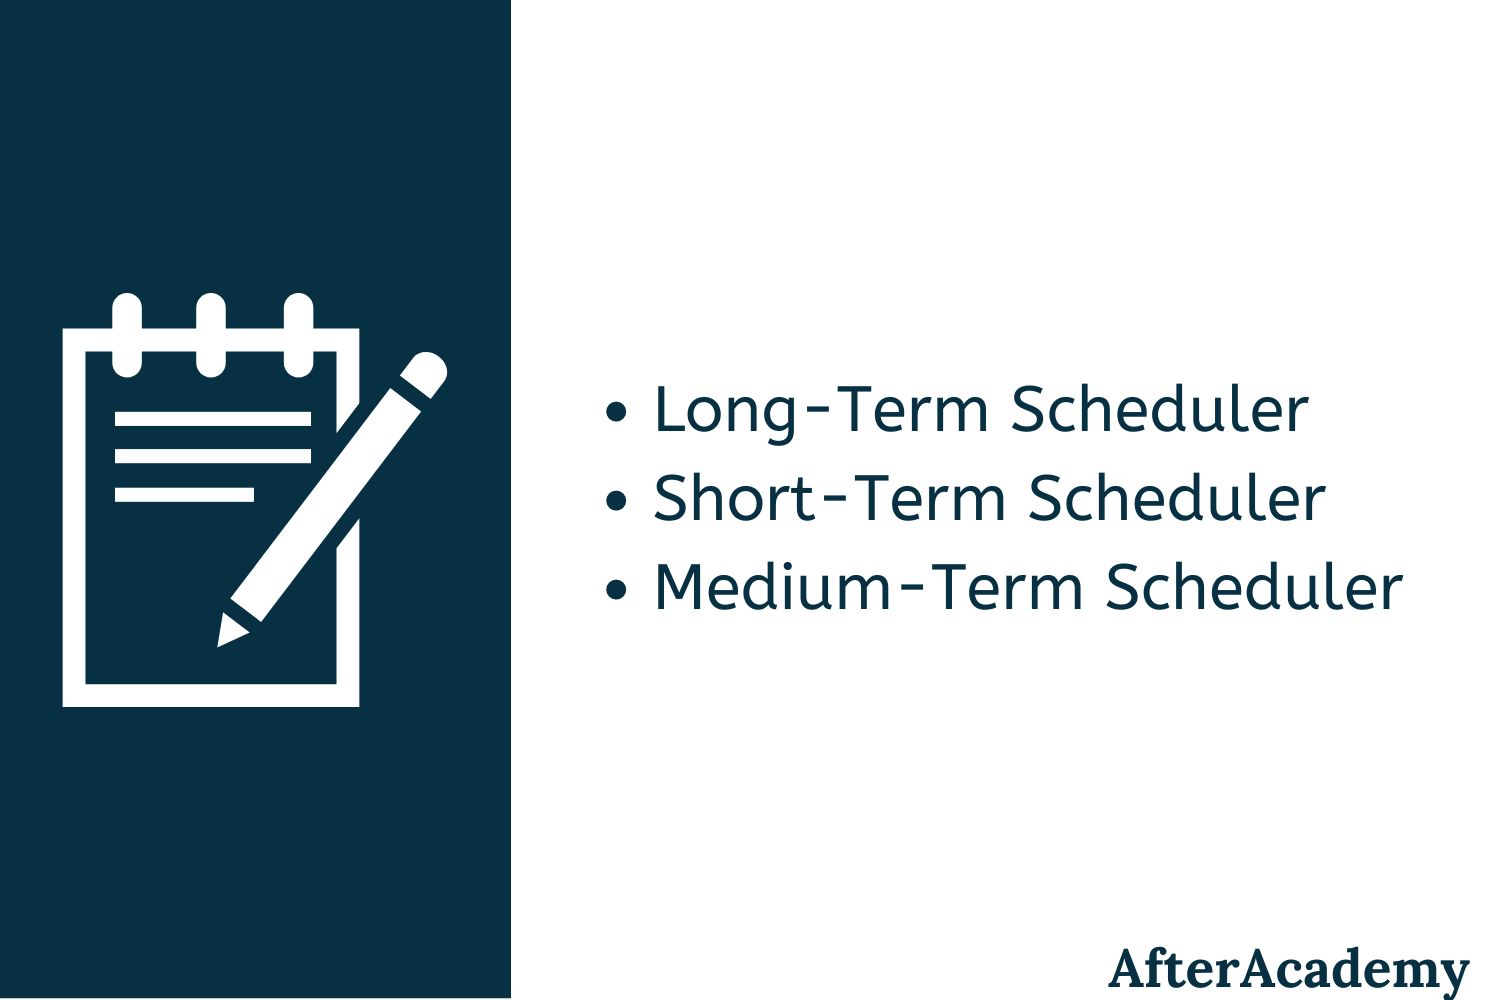 What is Long-Term, Short-Term, and Medium-Term Scheduler?